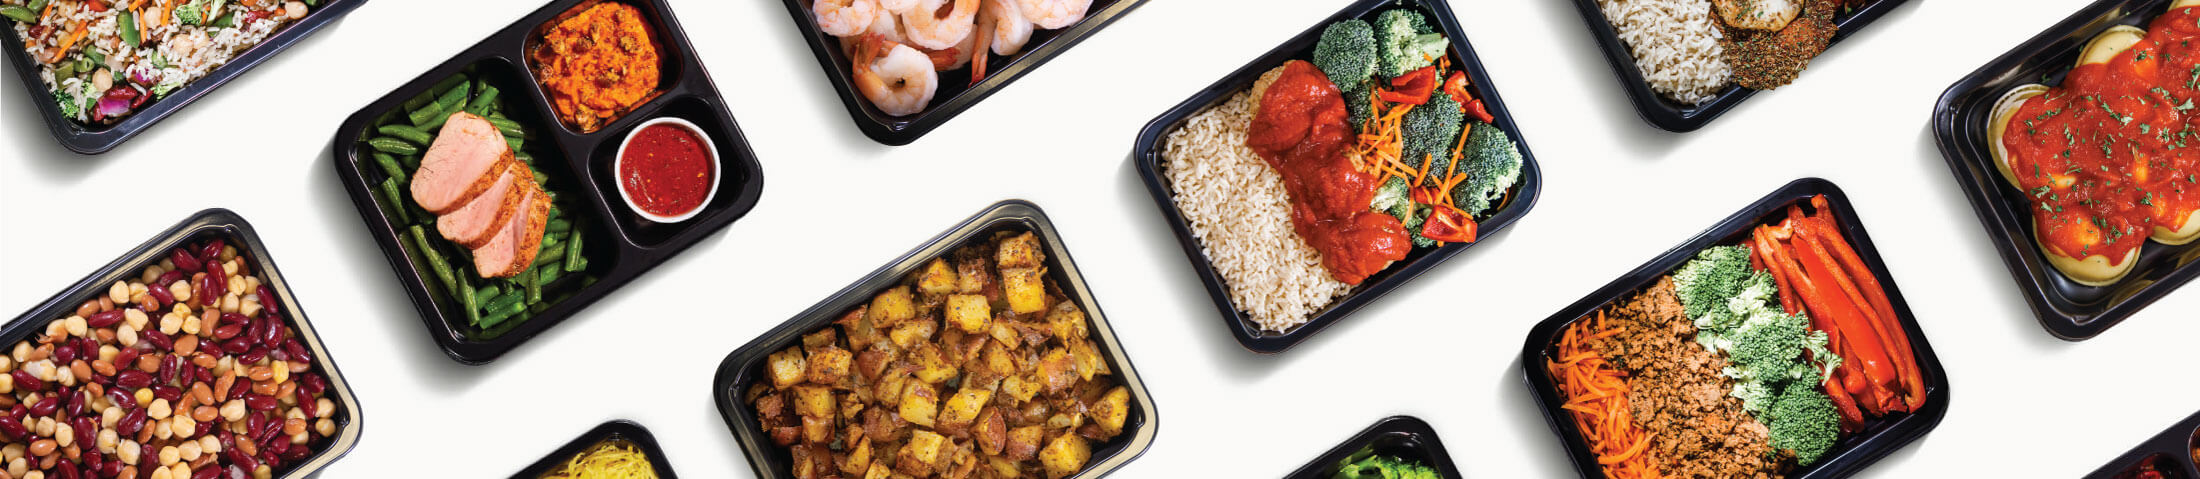 Picture of MealPro's healthy Miami senior meal delivery assortment. The food is made with fresh and natural ingredients